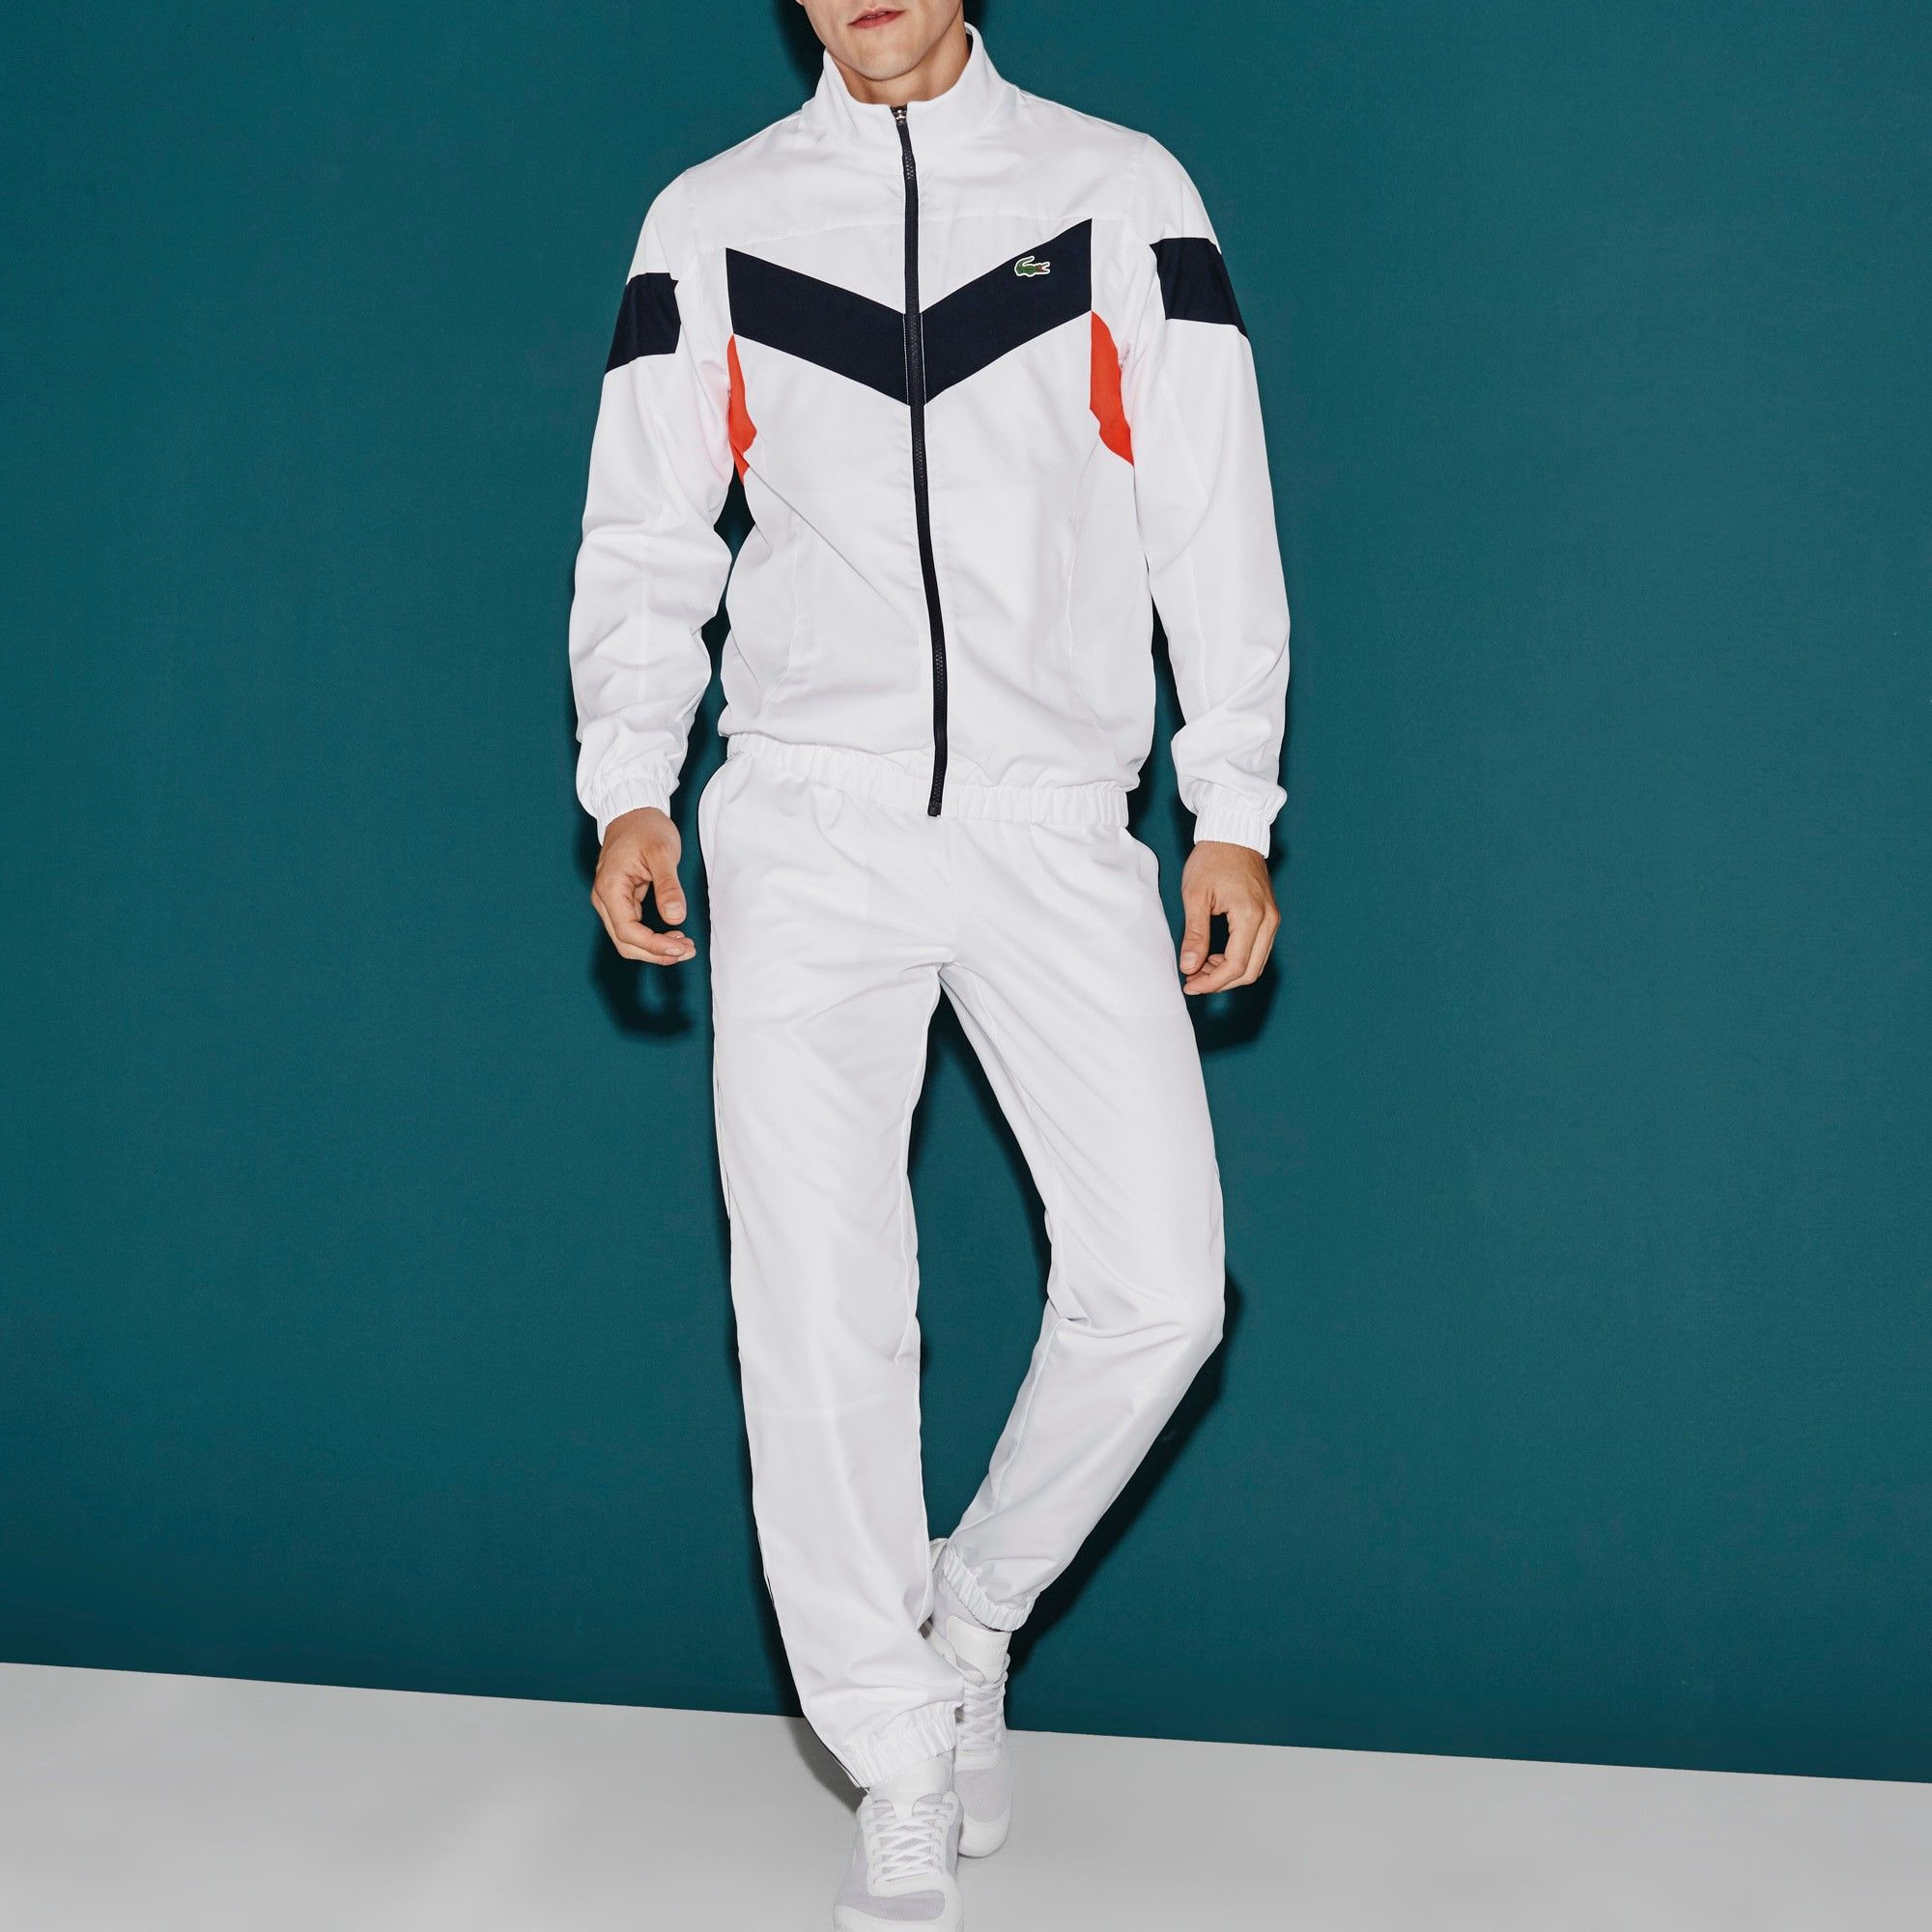 75991287d LACOSTE Men s Lacoste SPORT Tennis Colorblock Tracksuit - white navy  blue-mexico re.  lacoste  cloth